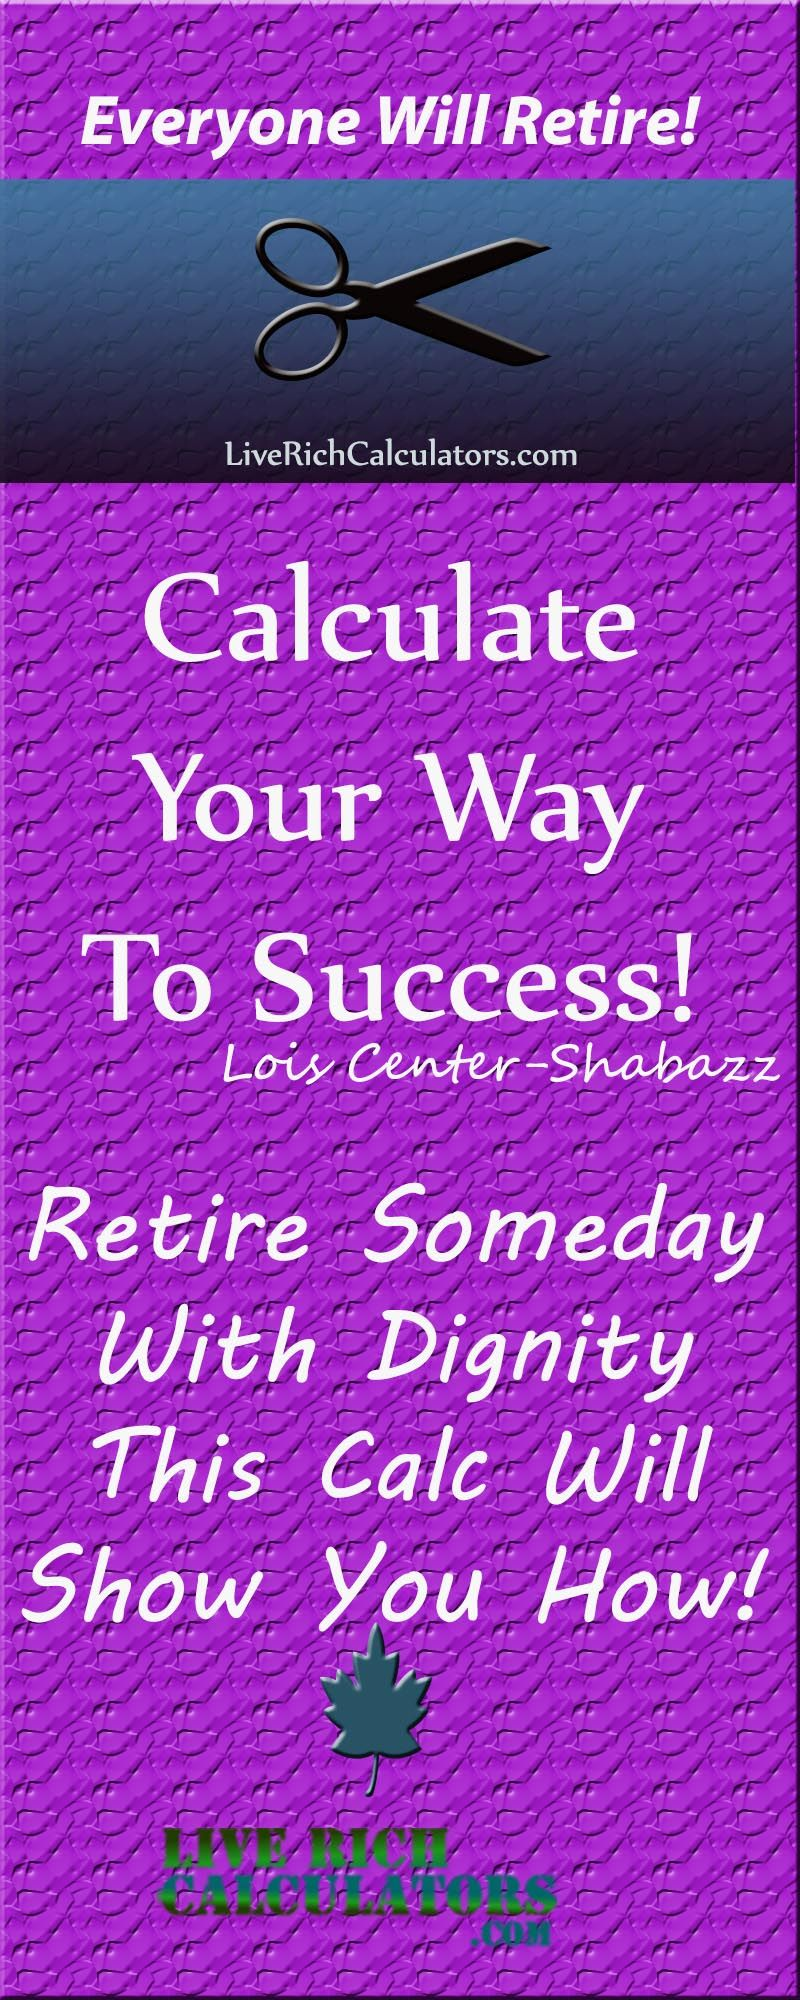 Retirement Savings Calculator Use This Financial Calculator Now